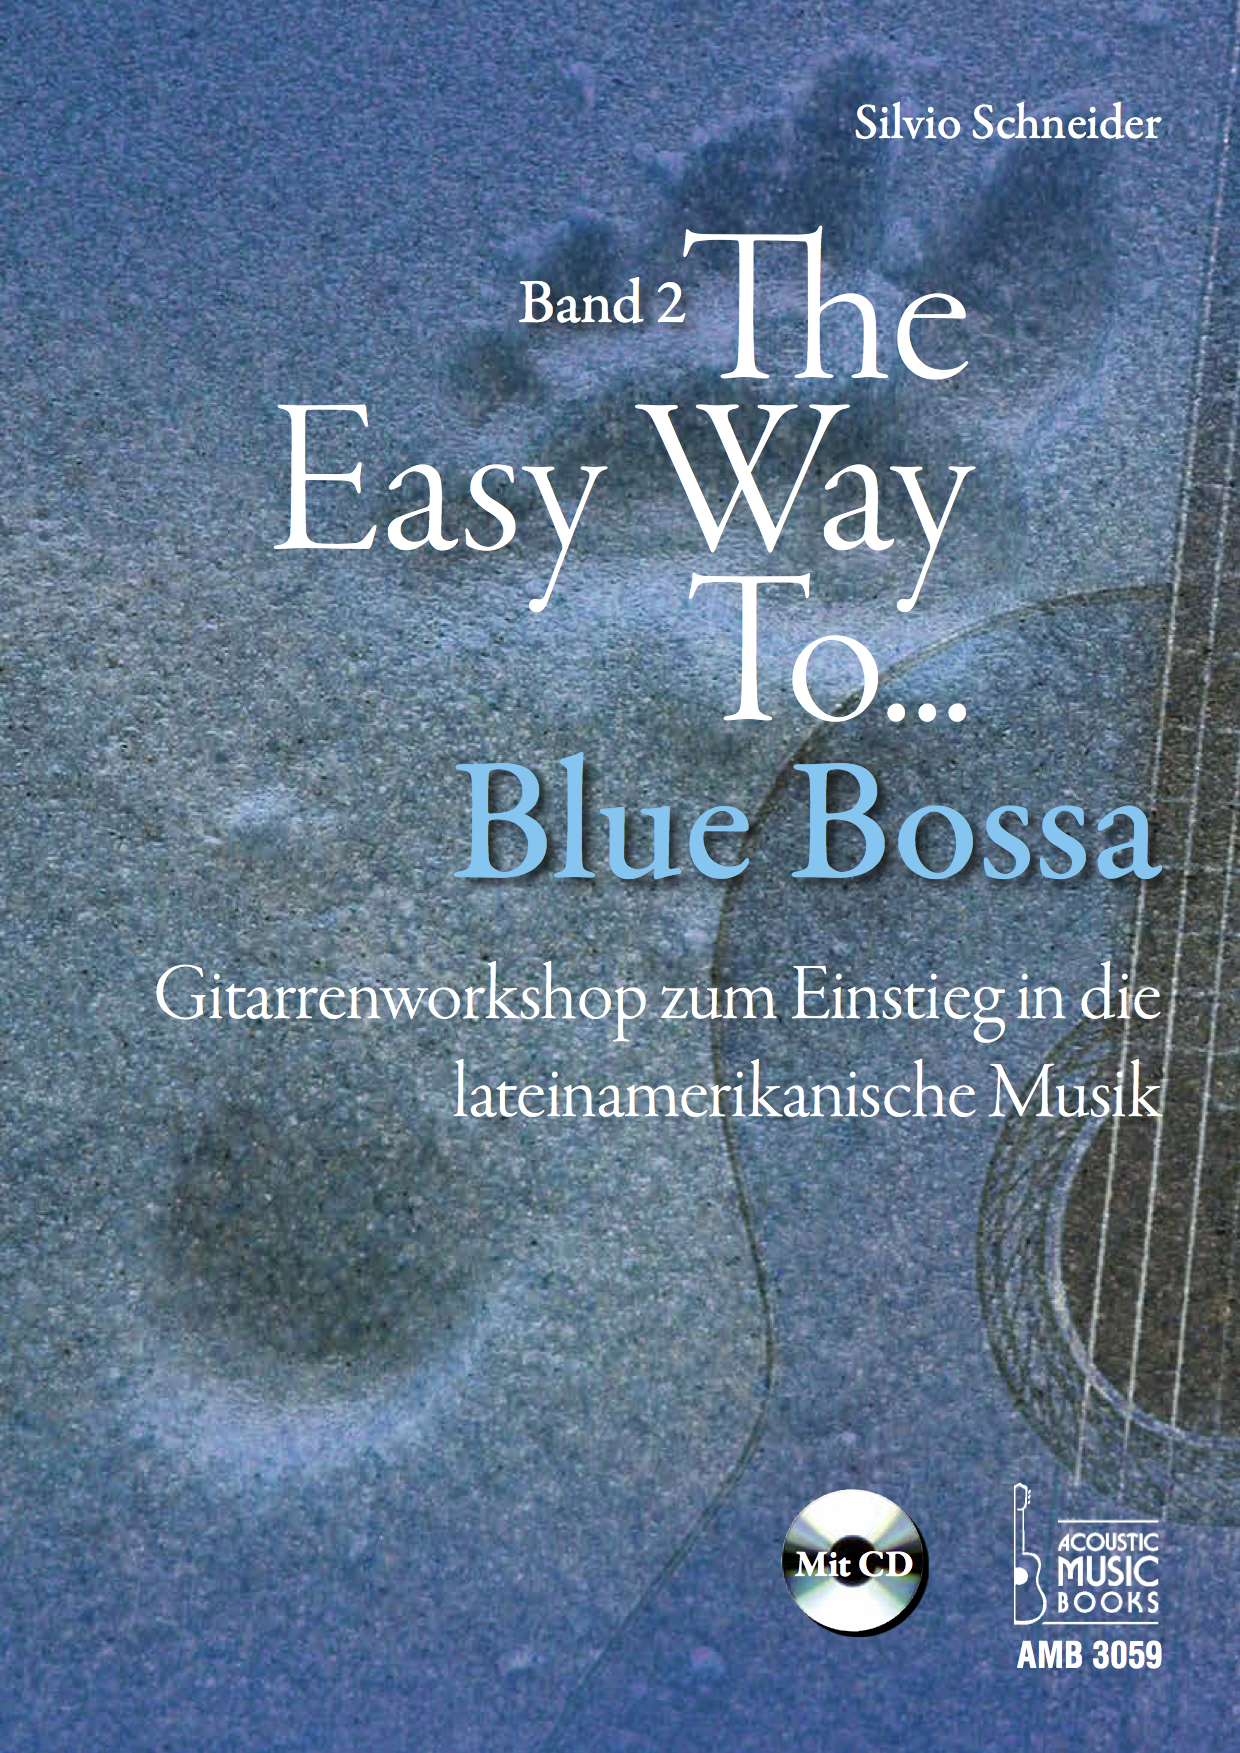 Nur_U1_Silvio_Schneider_The_Easy_Way_to_Blue_Bossa